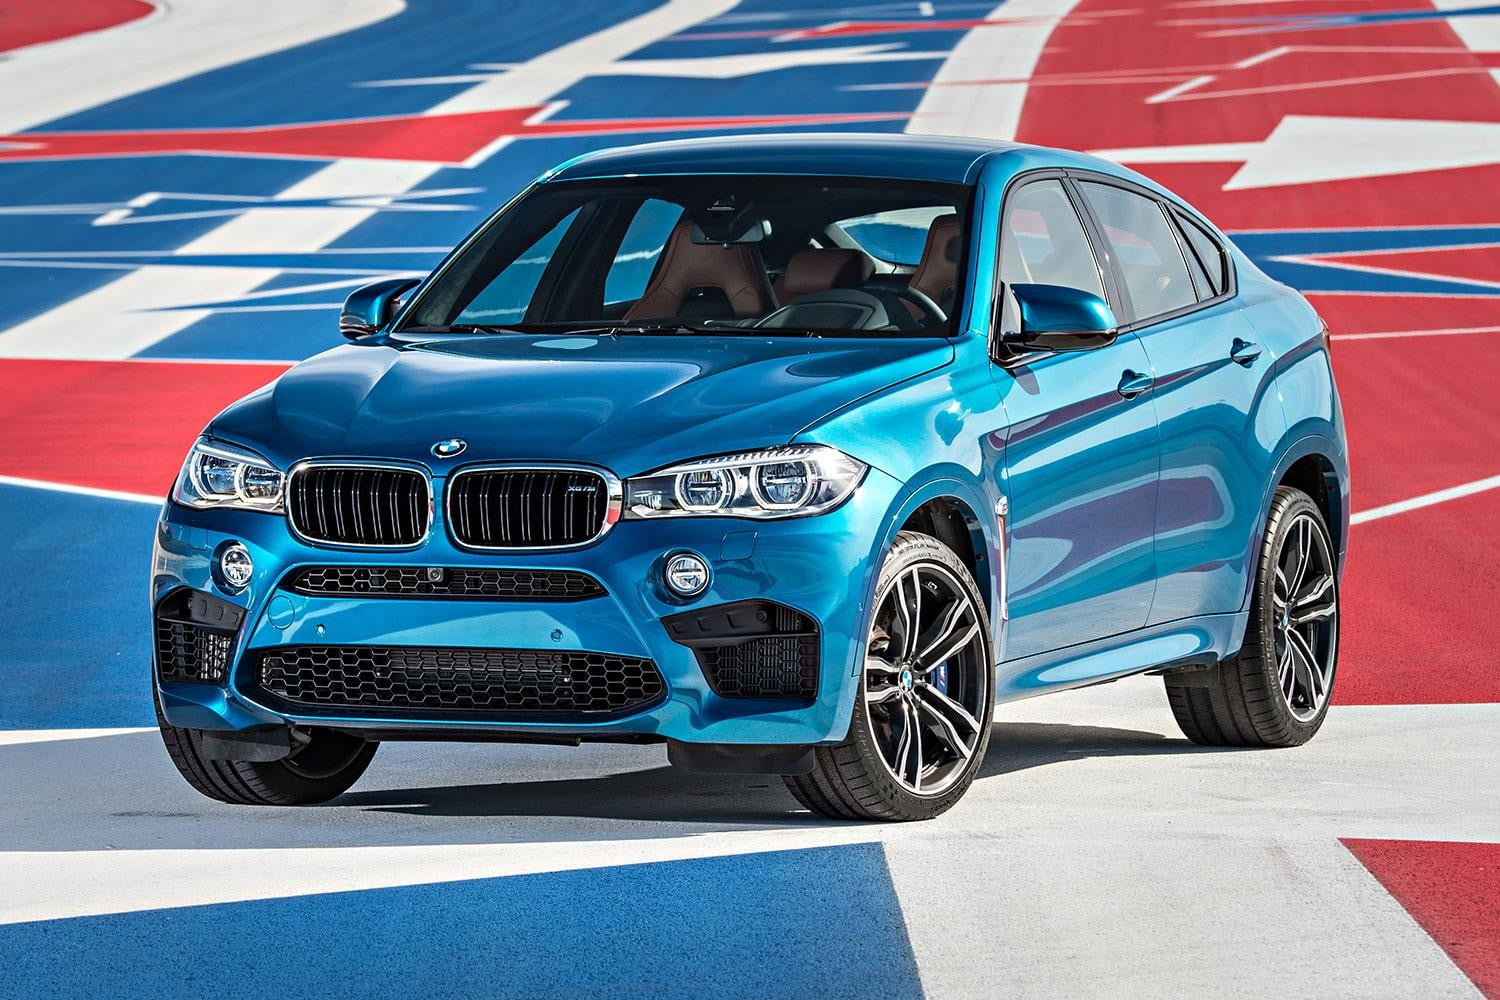 2015 Bmw X6 M First Drive Review Digital Trends